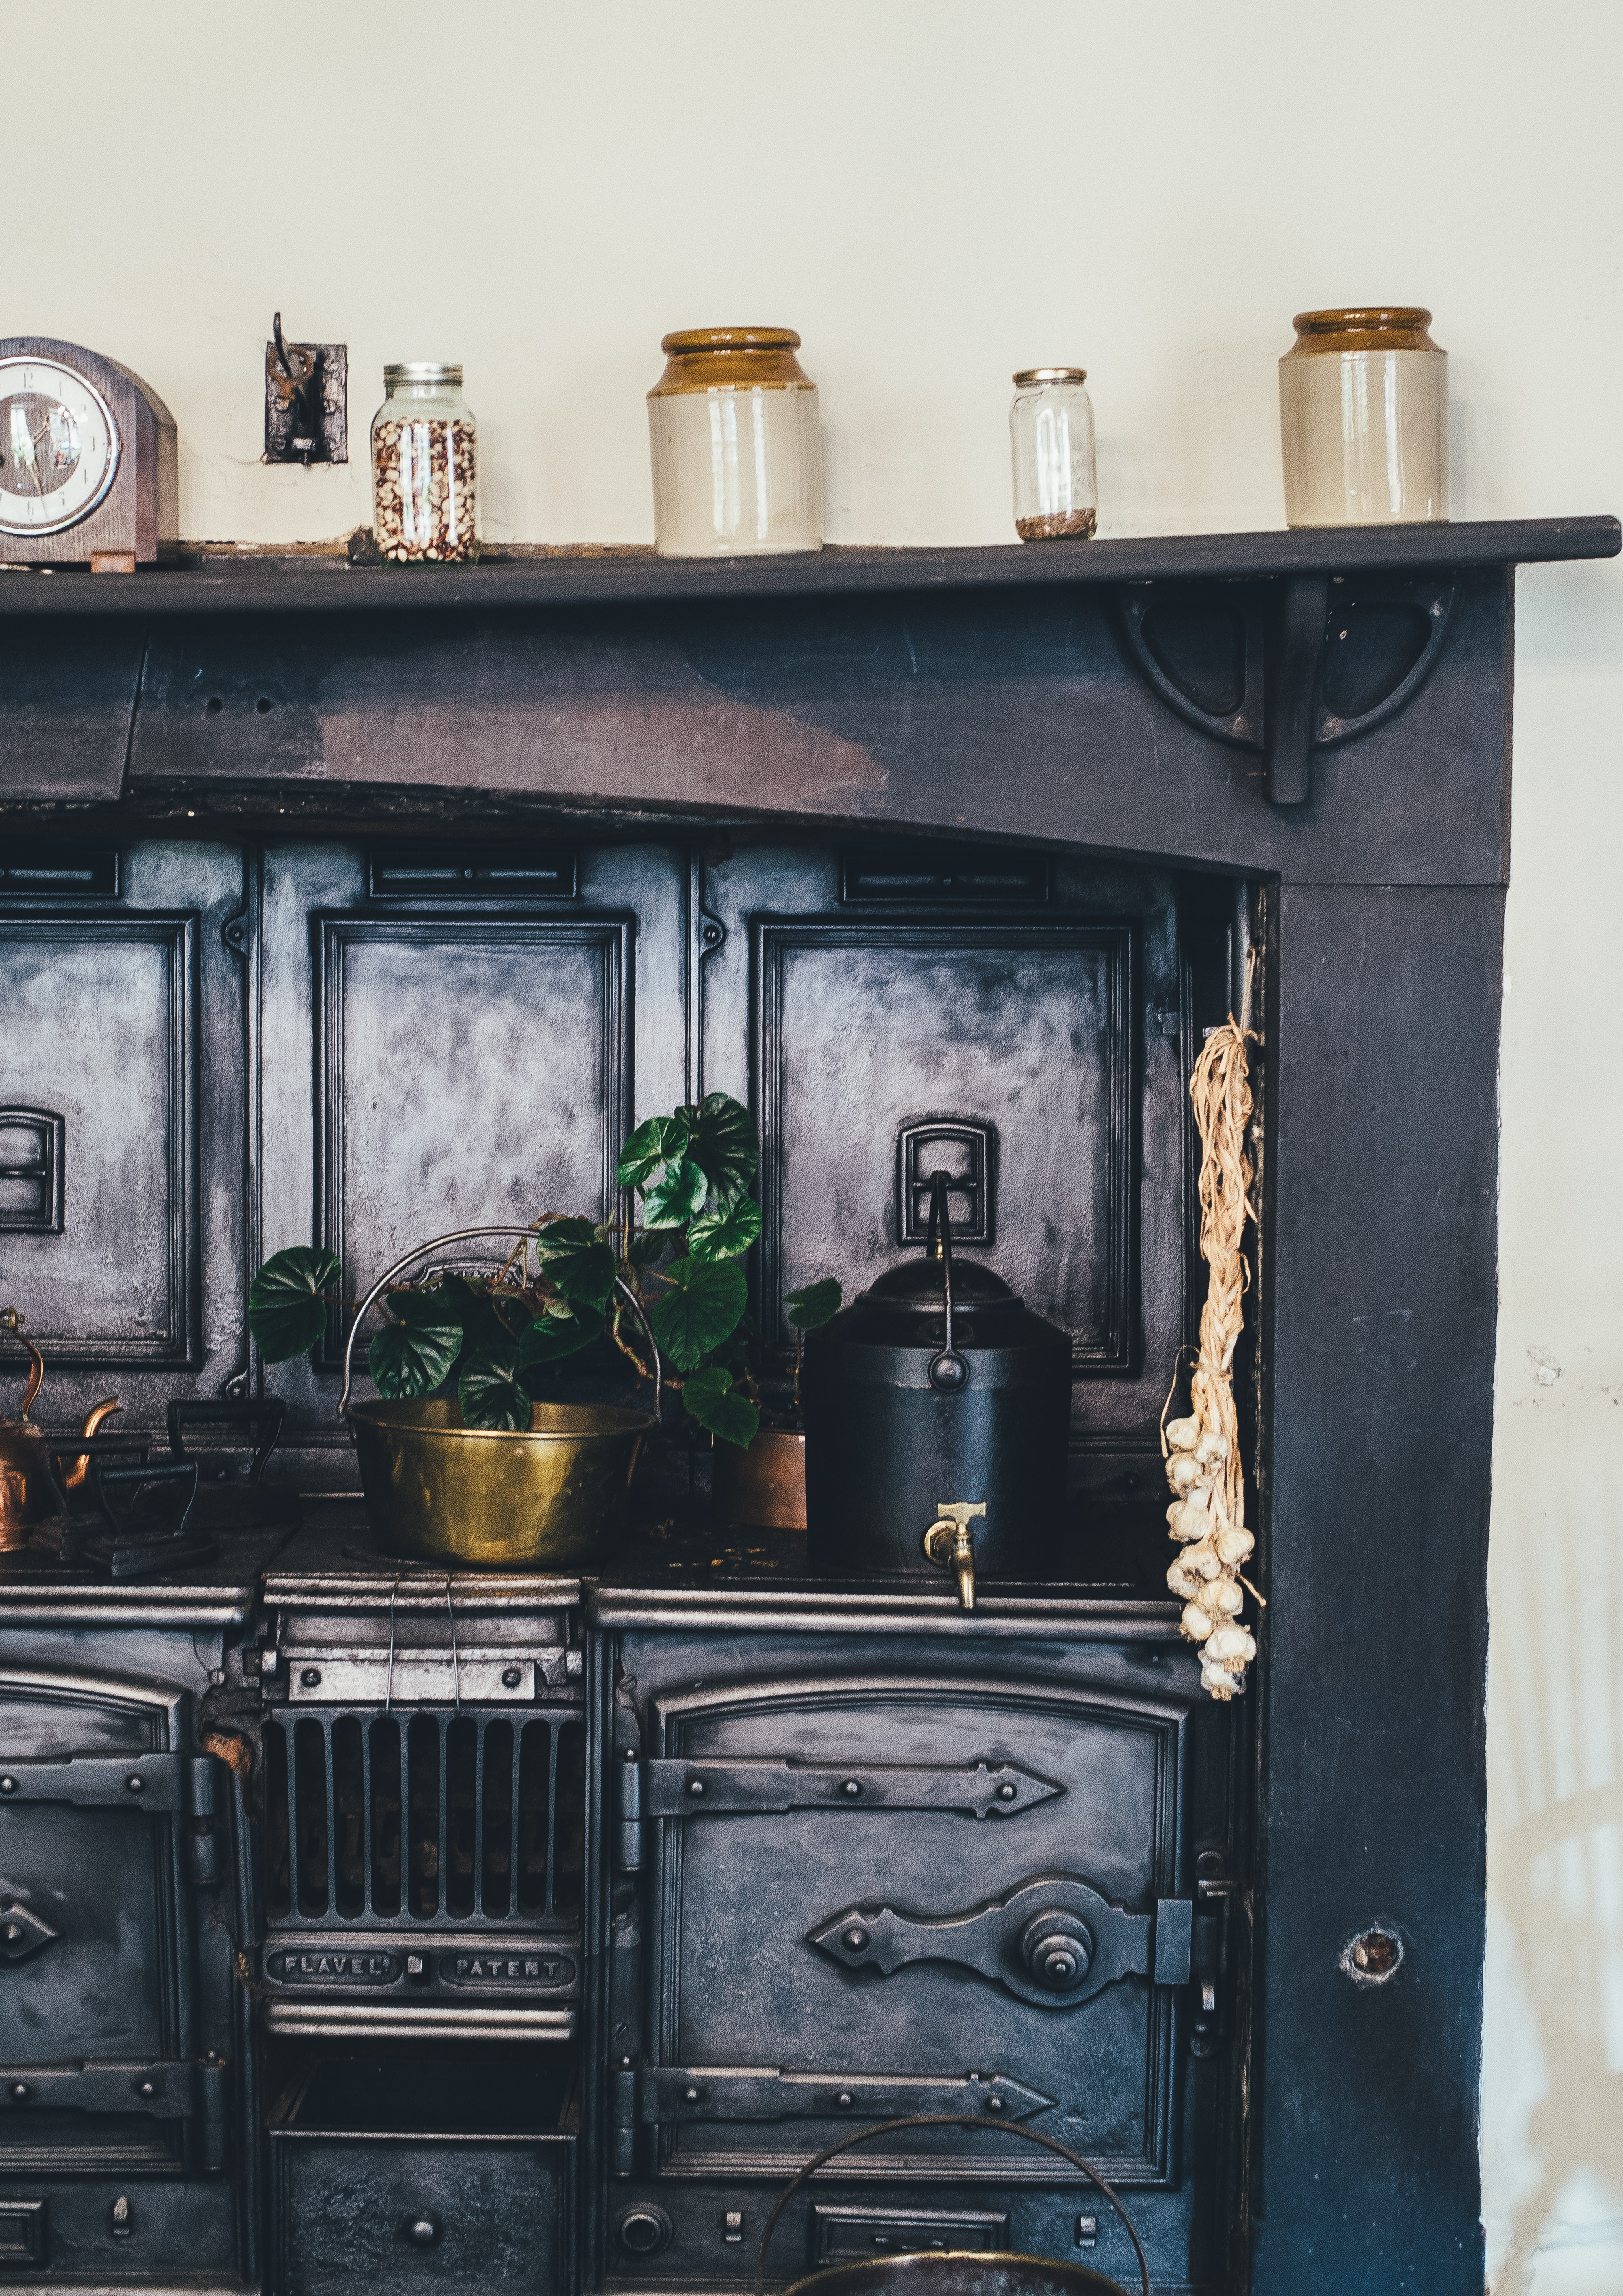 An old black kitchen shelf containing a stove, potted plant, jars, kettle and a clock.